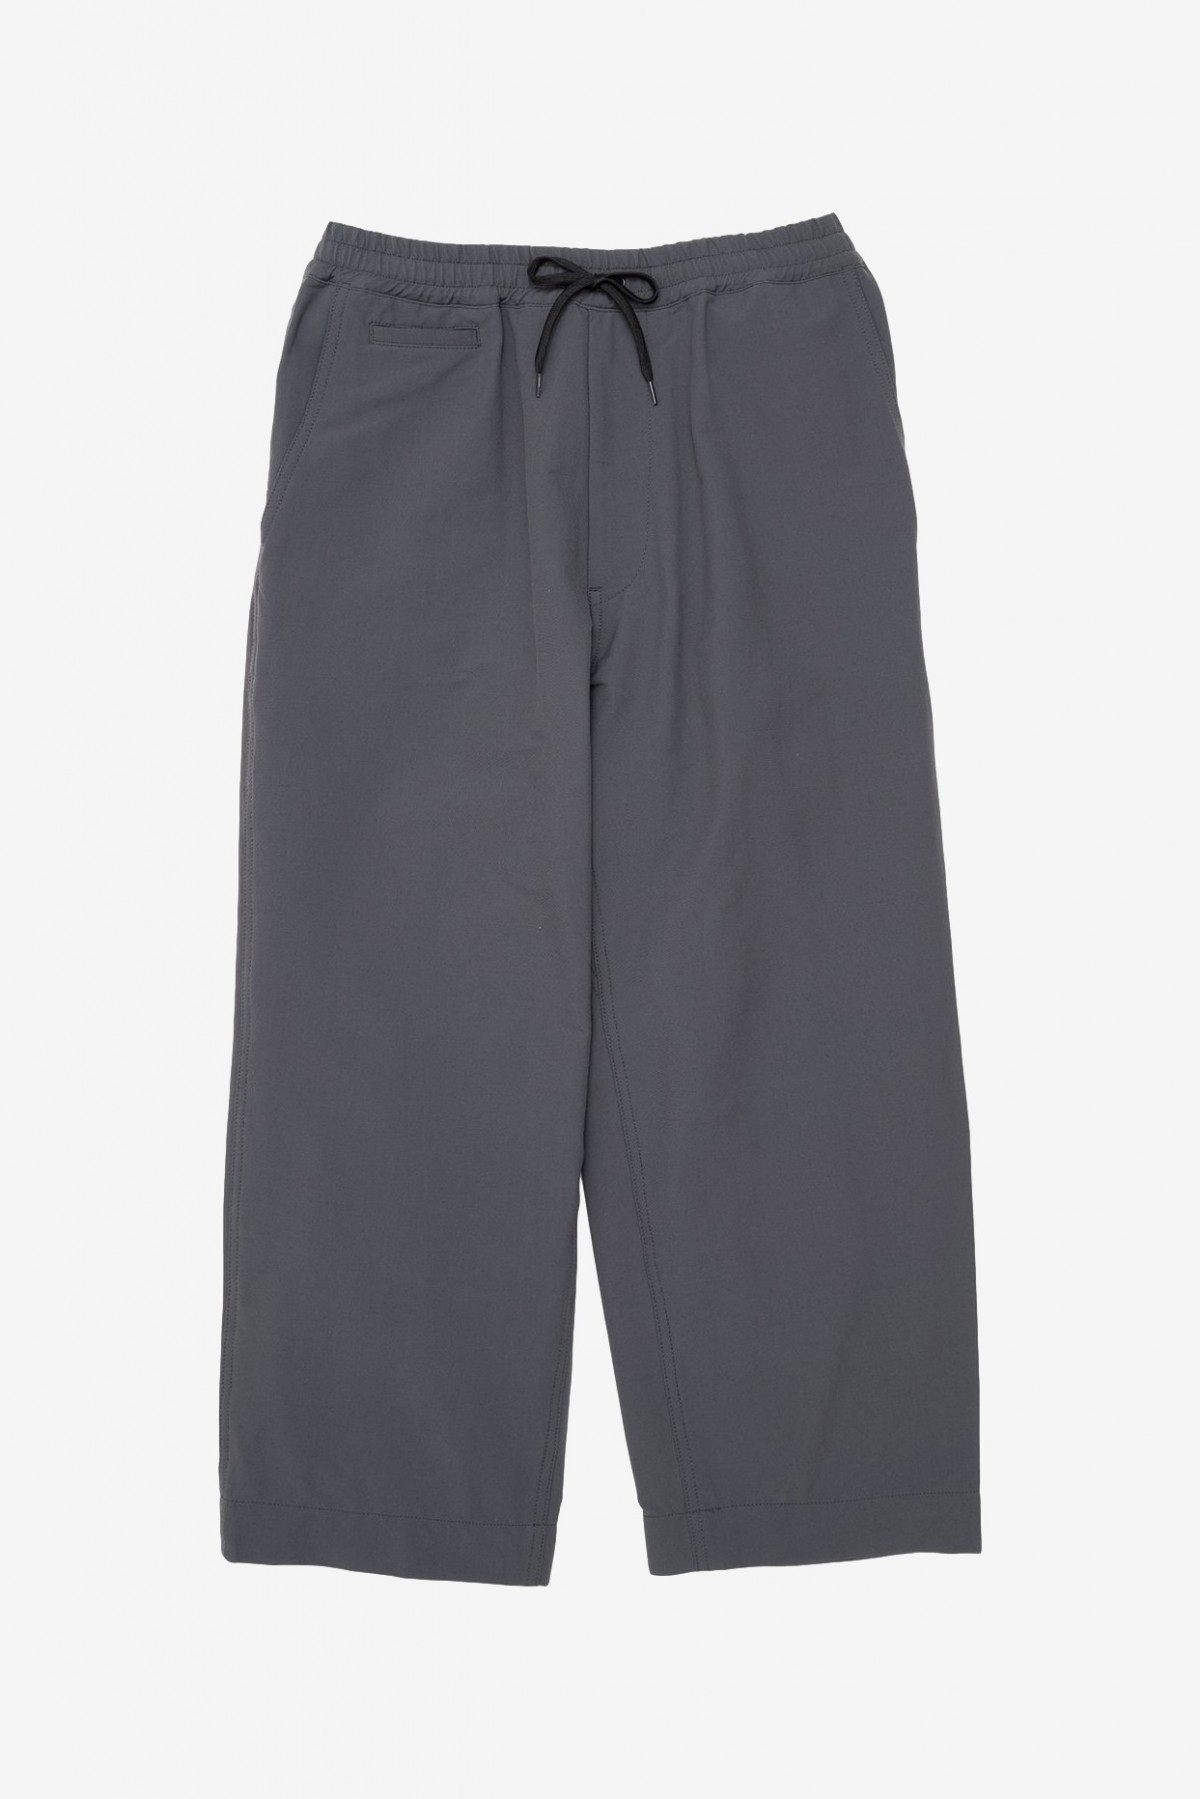 Nanamíca Easy Pants in Charcoal